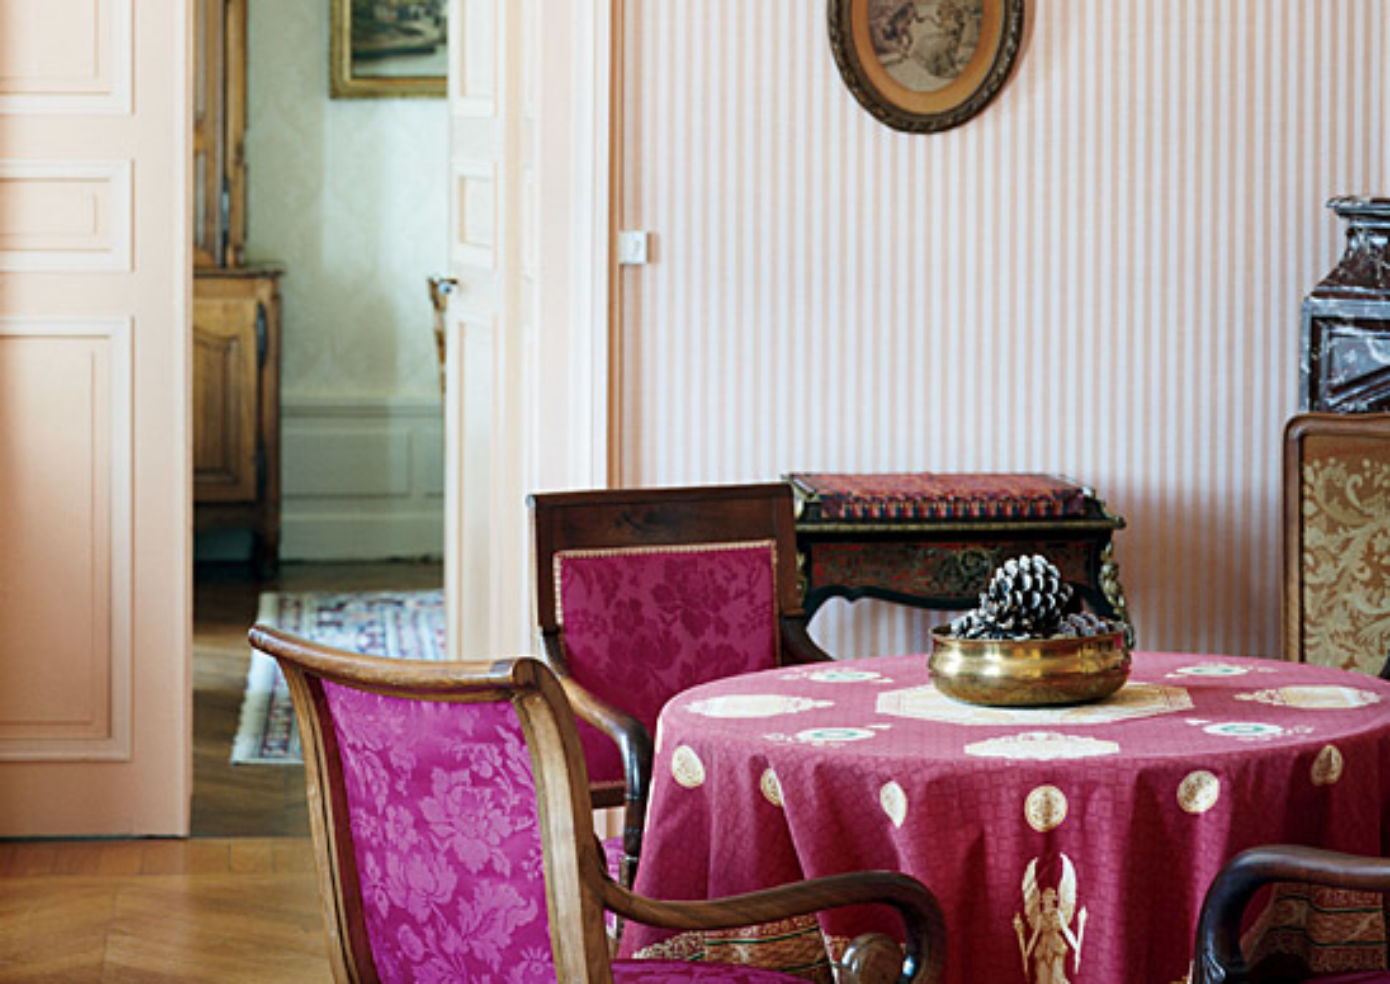 A common room at Château des Tertres, furnished with 19th-century pieces.